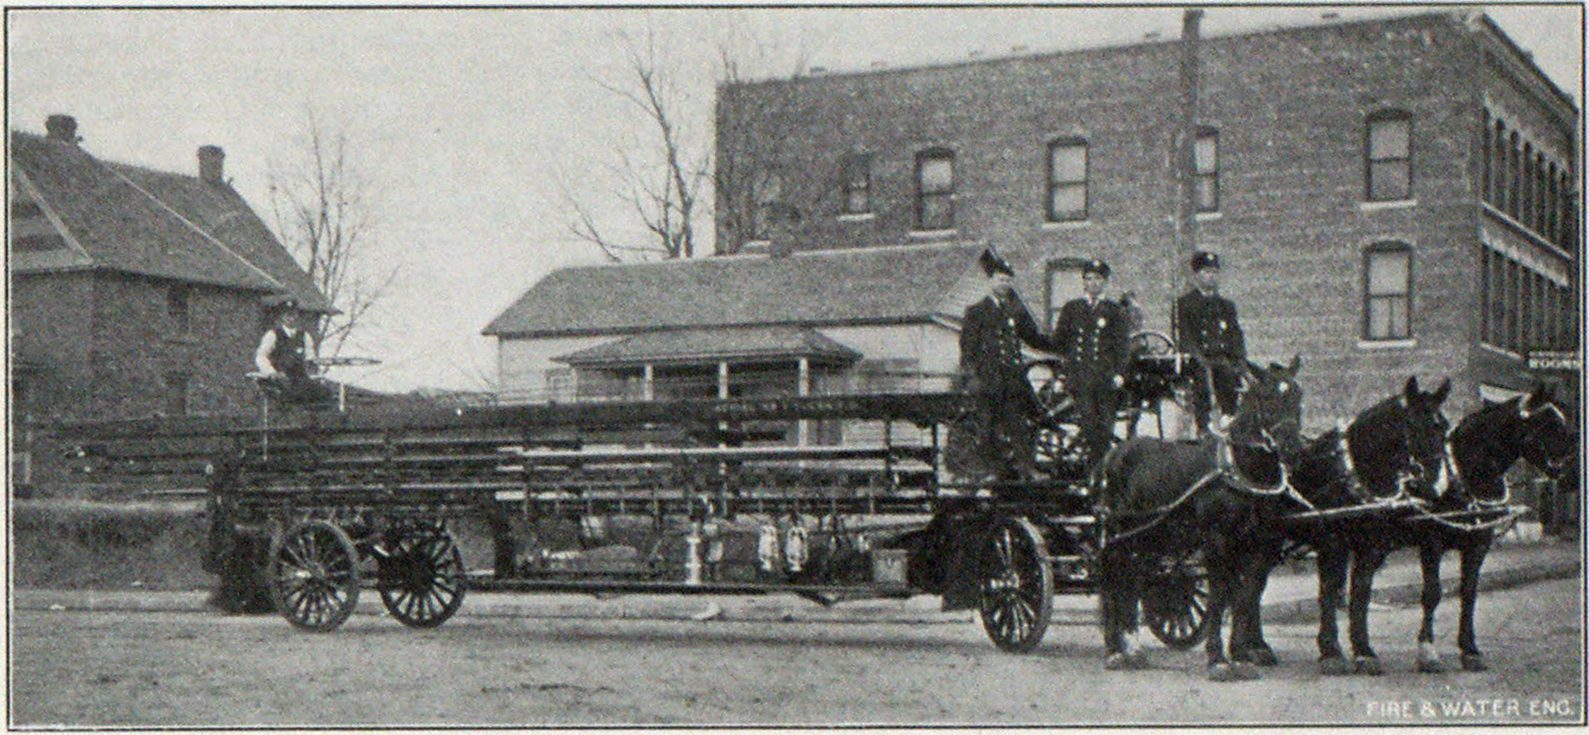 AERIAL HOOK AND LADDER COMPANY OF TULSA.